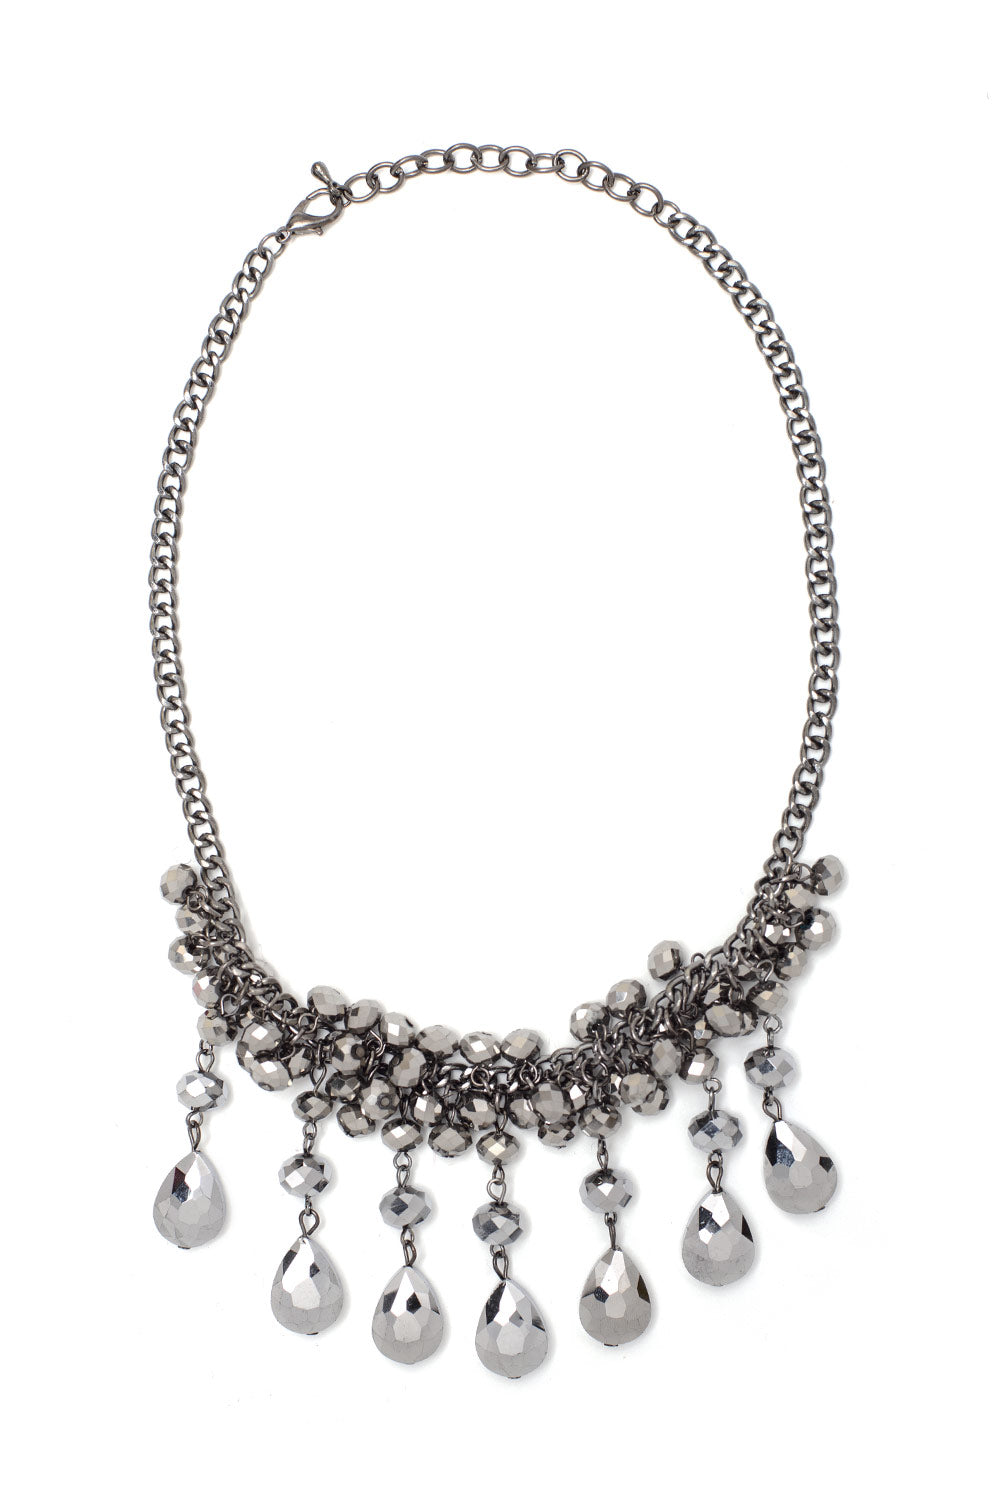 Type 2 Silver Droplets Necklace